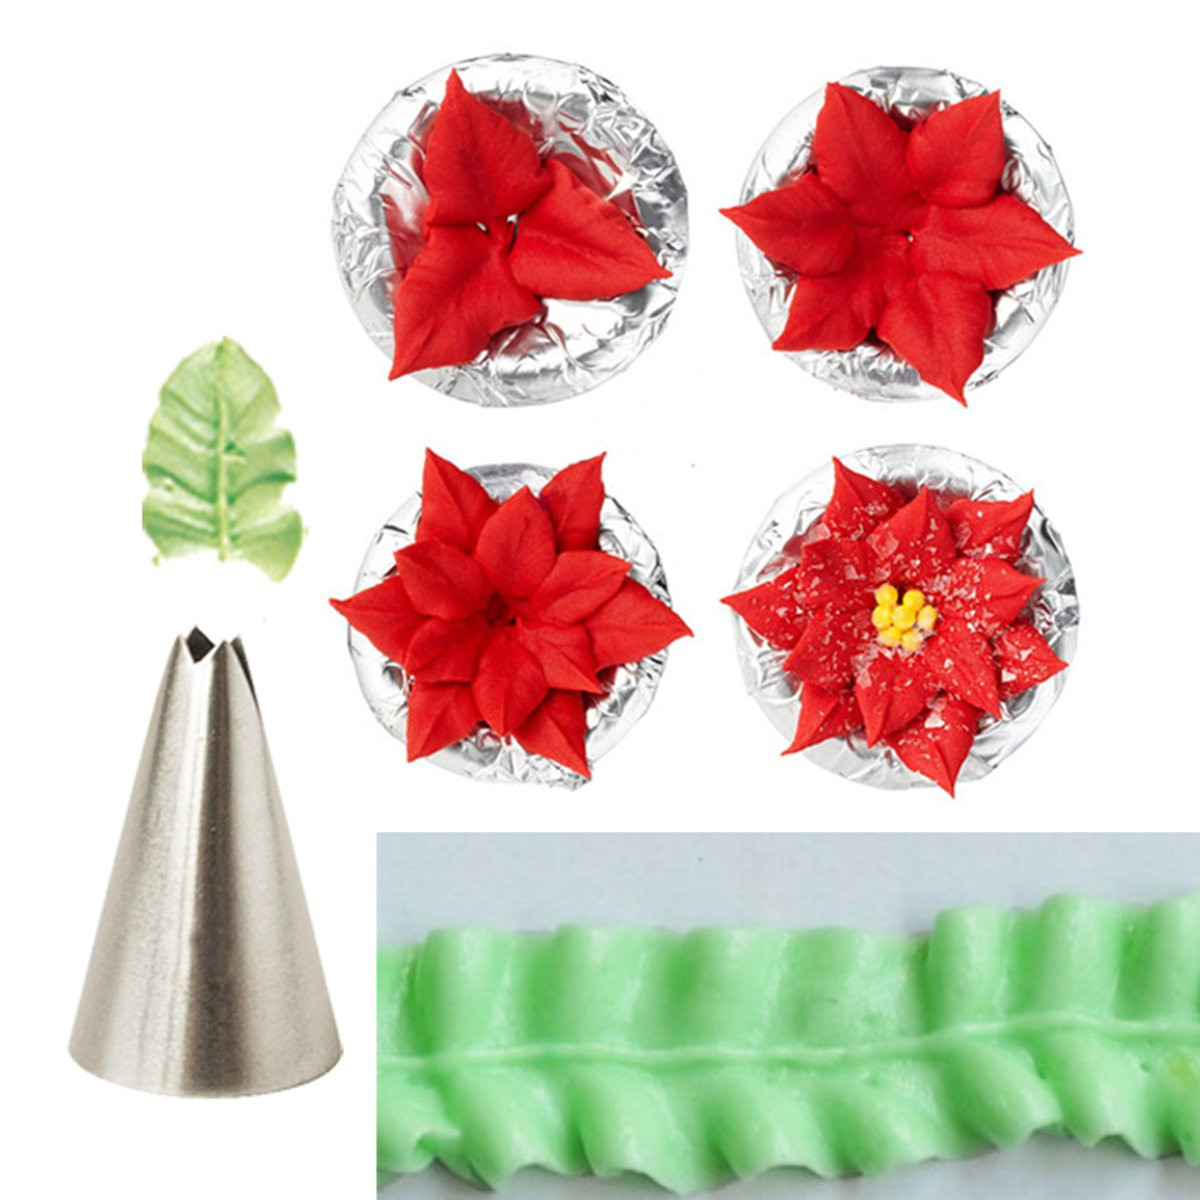 7pcs Leaf Cup Cake Decor Stainless Steel Icing Piping N